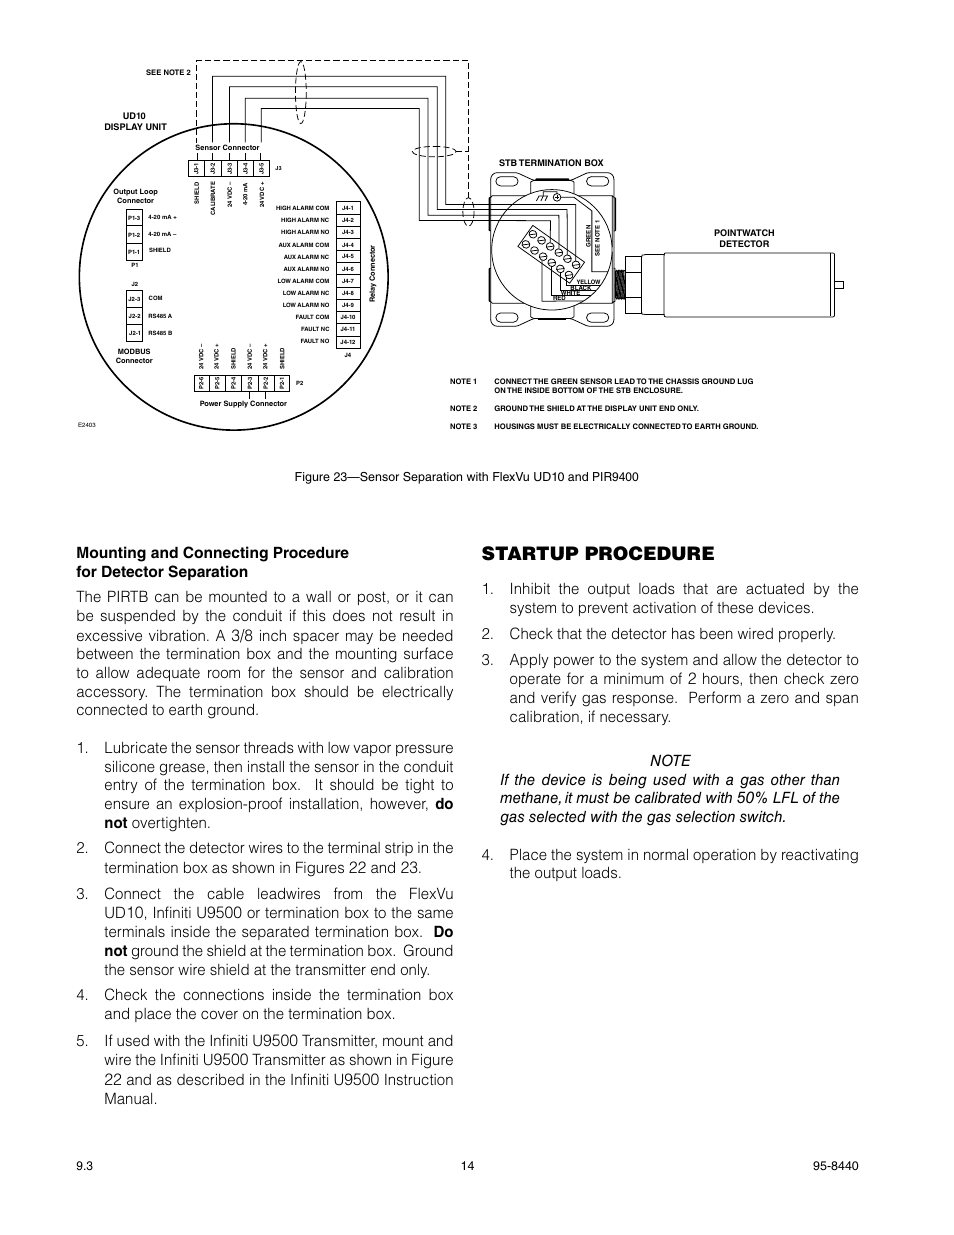 Startup Procedure Connect The Cable Leadwires From The